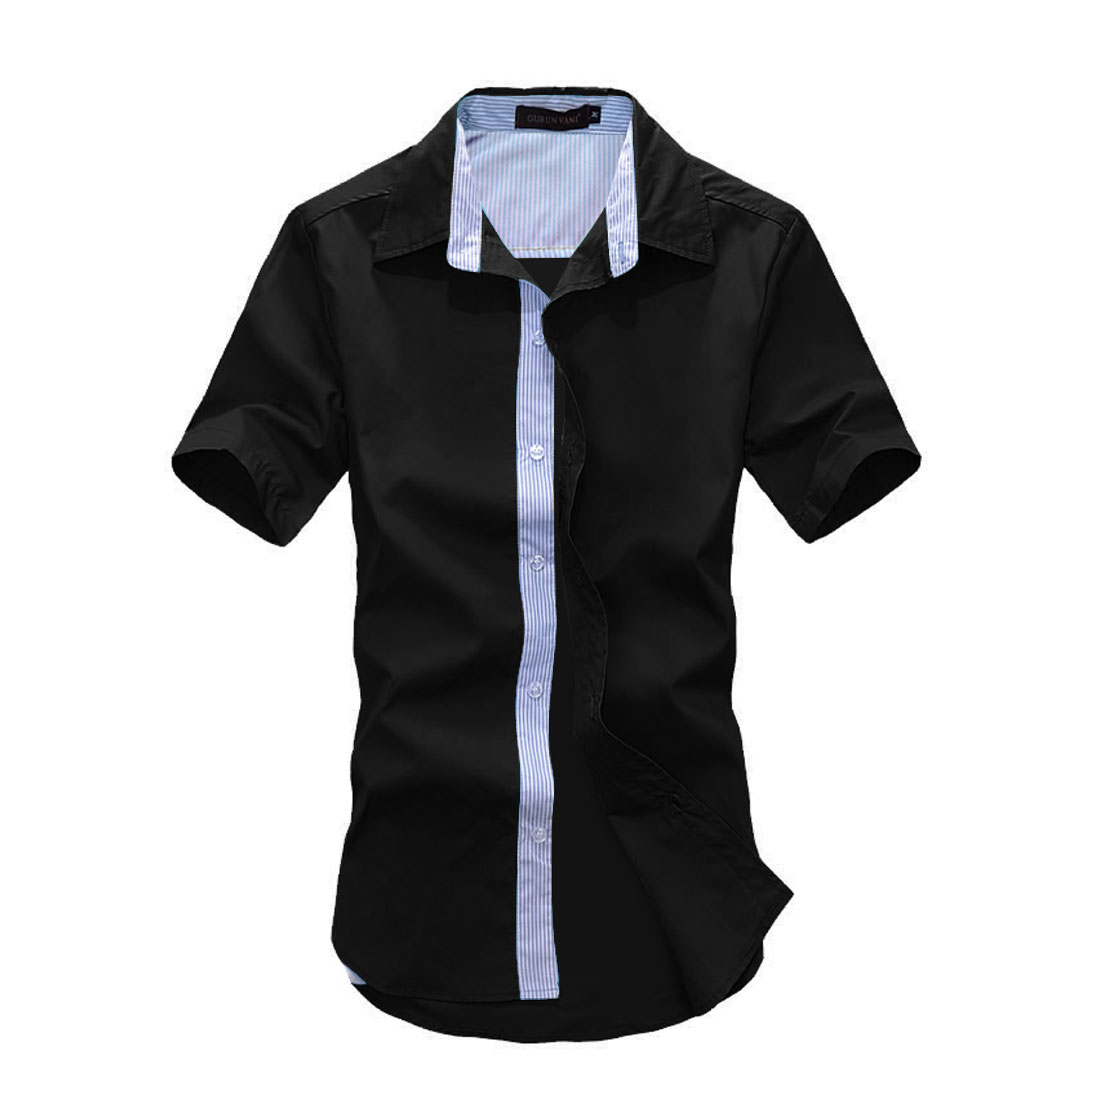 Man Korean Style Short Sleeves Point Collar Chic Shirt Black M